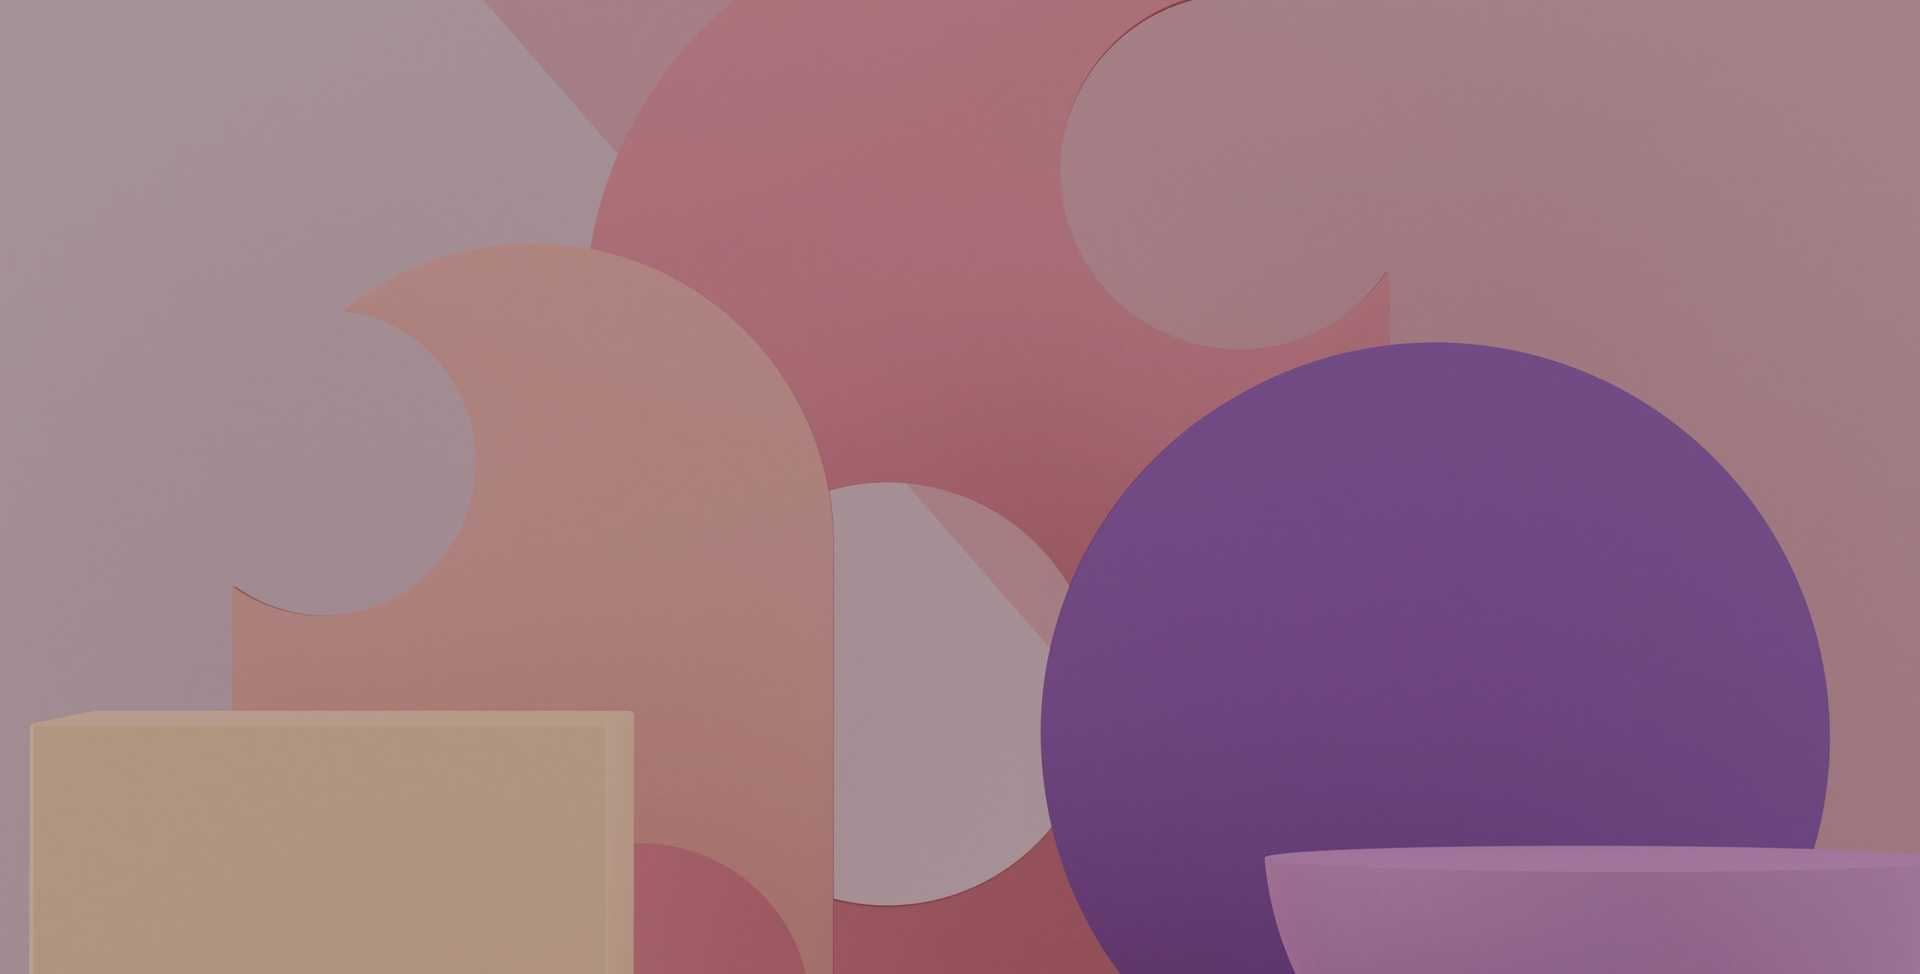 Abstract image full of rounded and angular shapes in yellow, pink, purple and white against a light purple backdrop